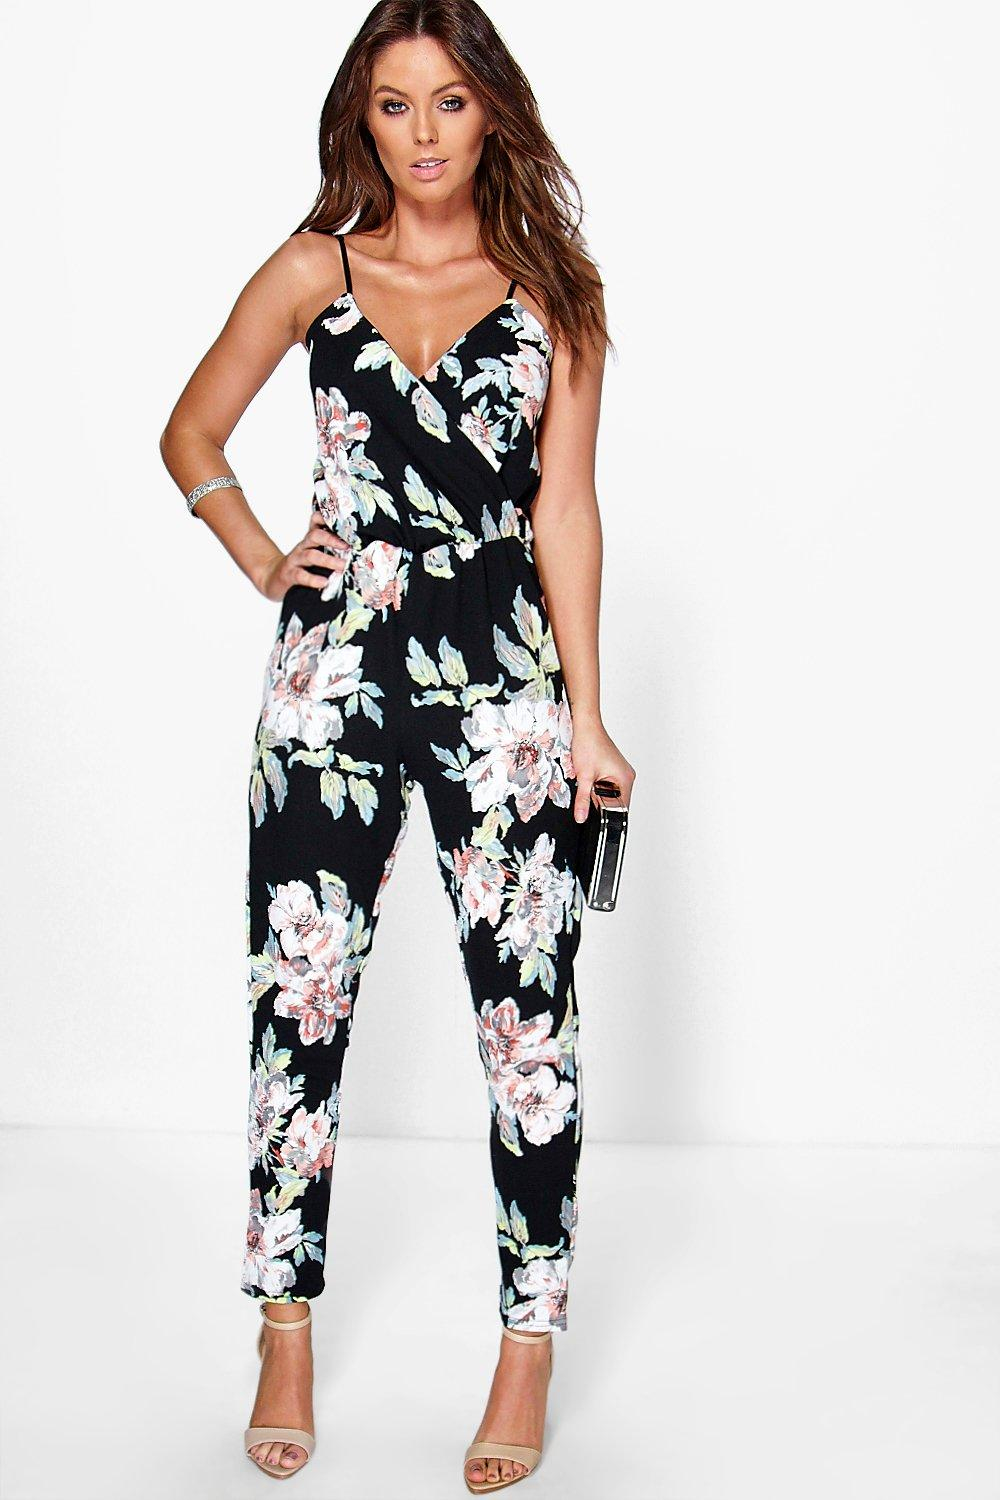 Black Jumpsuits Pink Jumpsuits Lace Up Jumpsuits Cut Out Jumpsuits Denim Jumpsuit Backless Floral Romper Black Zipper Jumpsuit Lace Up Long Sleeve Romper When speaking of the simplest outfit, womens romper must be on the list.